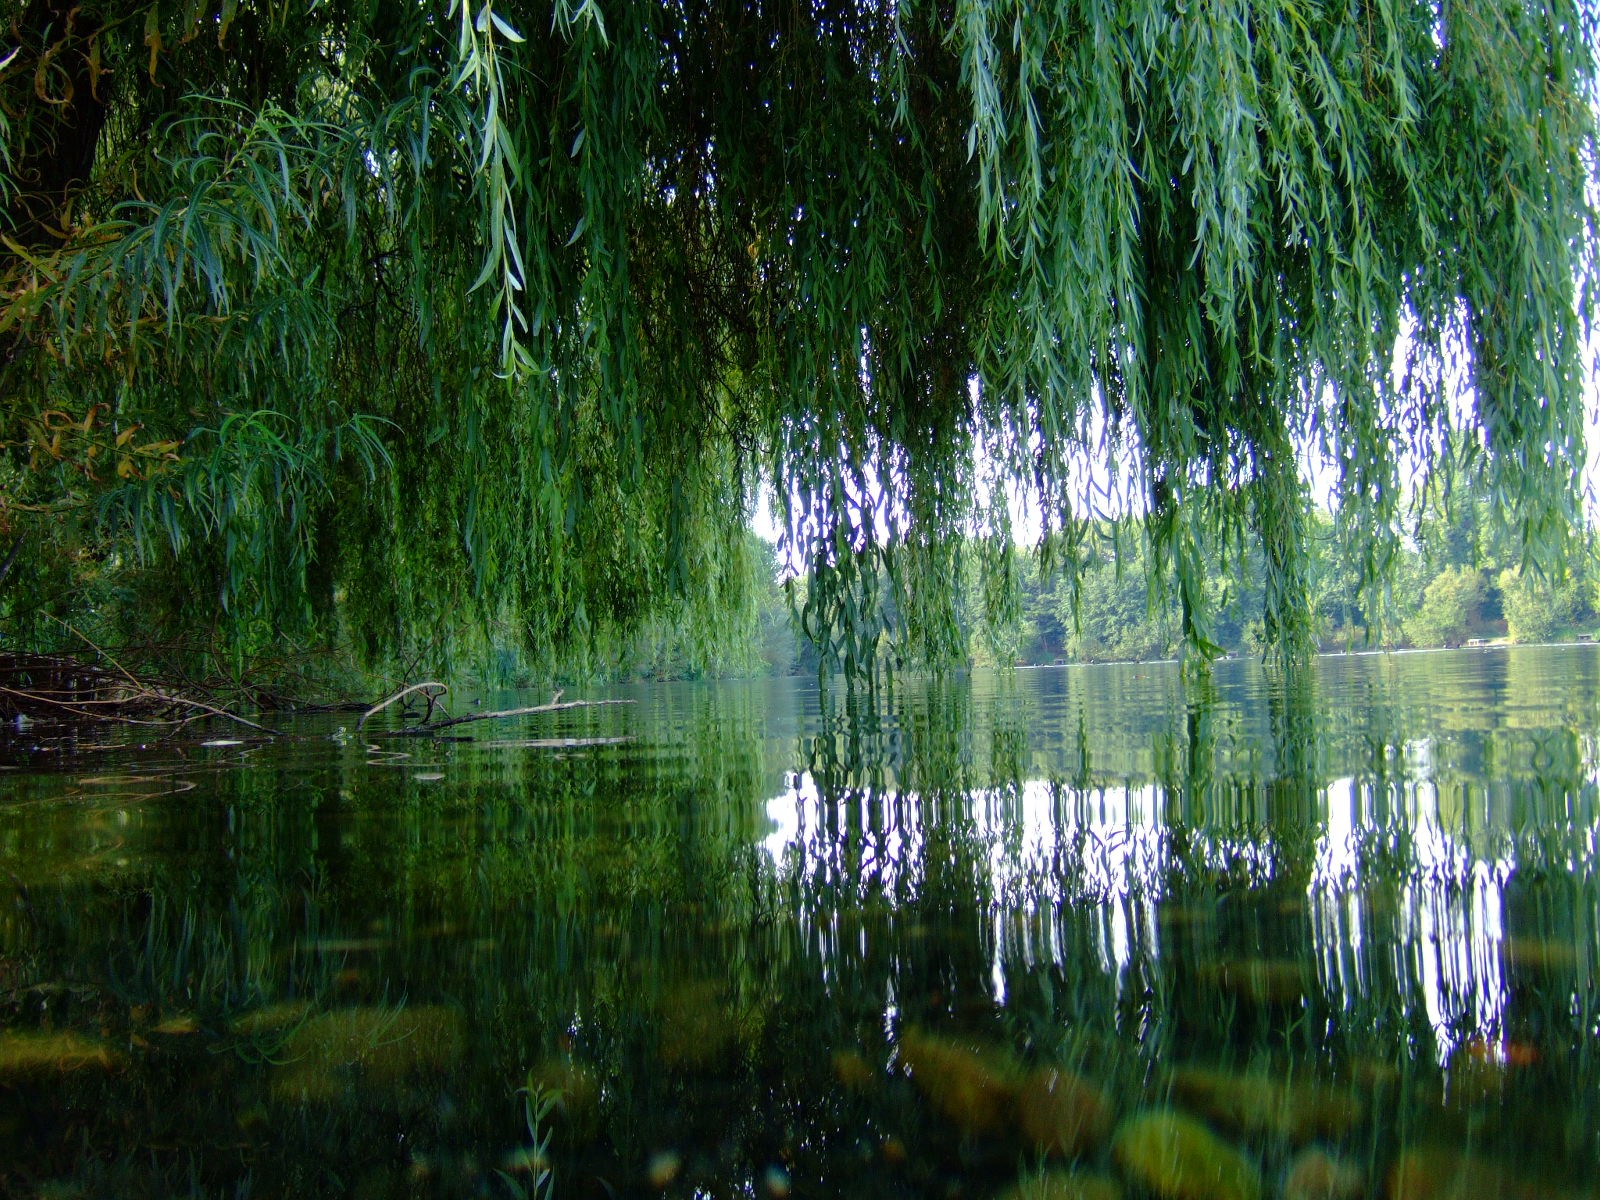 A flexible Willow tree. Picture by John Seb Barber — Flickr